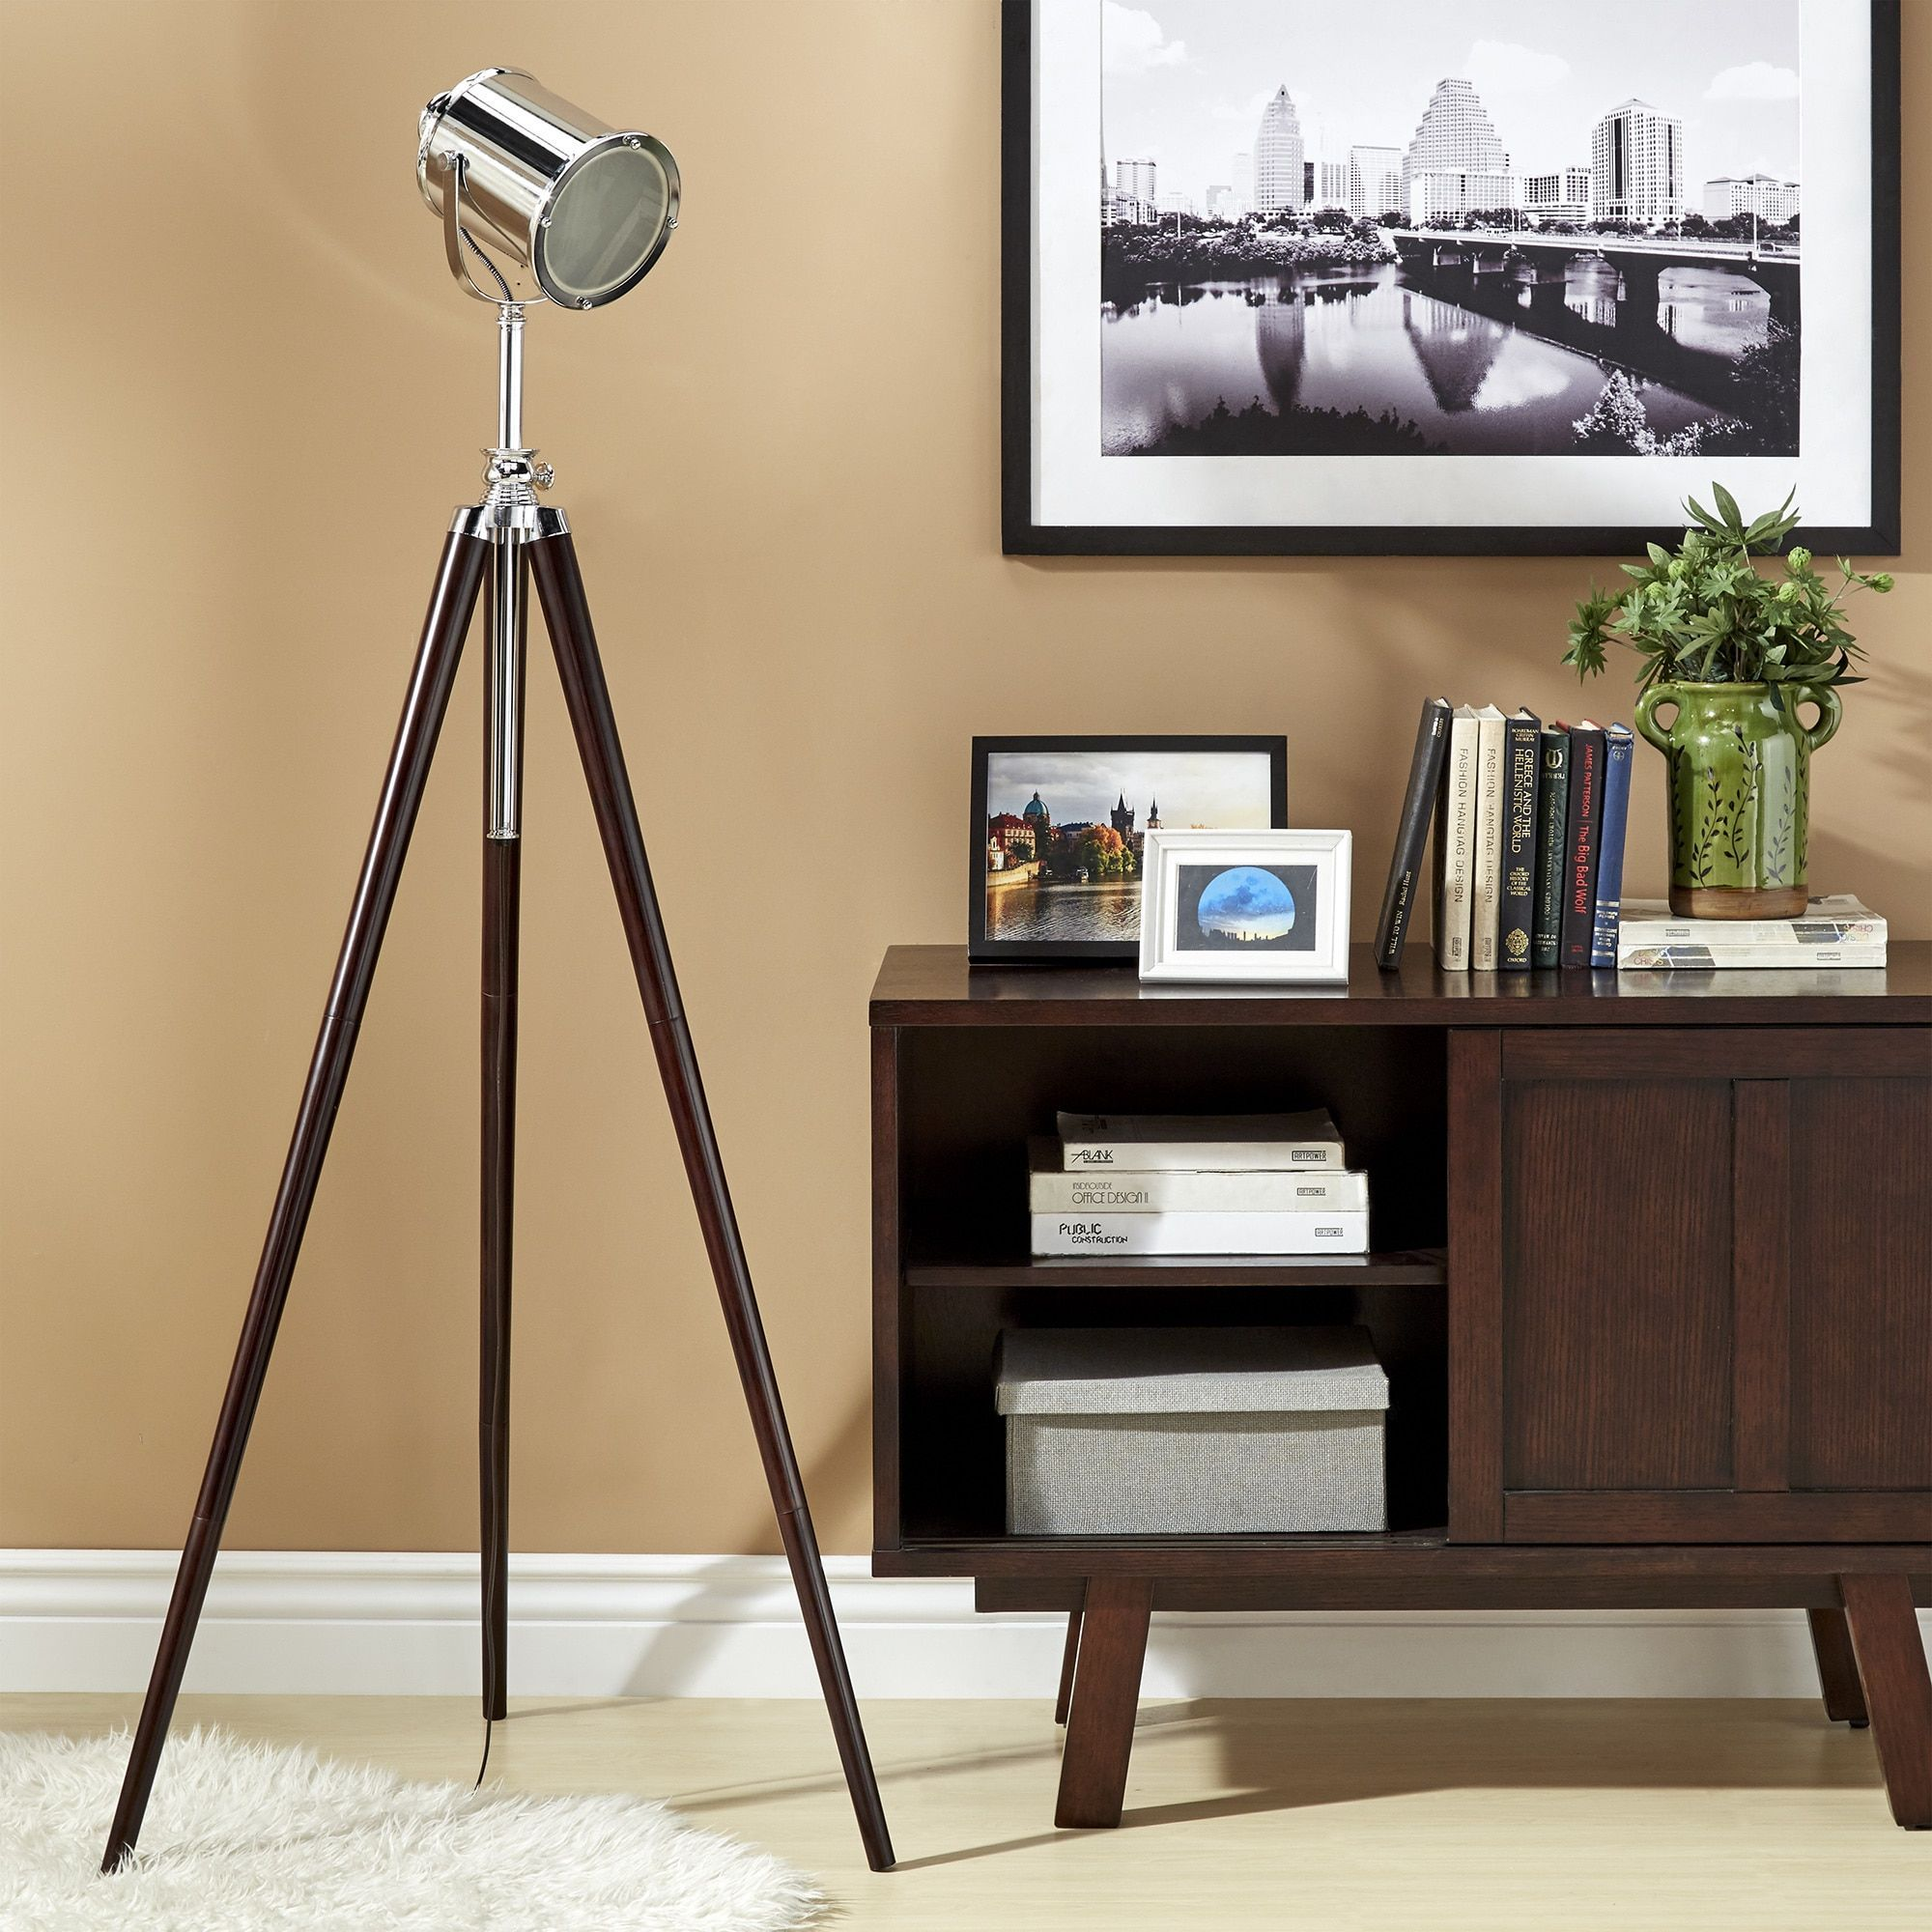 Tripod floor lamp in living room - Baxter Spotlight Tripod Floor Lamp By Mid Century Living